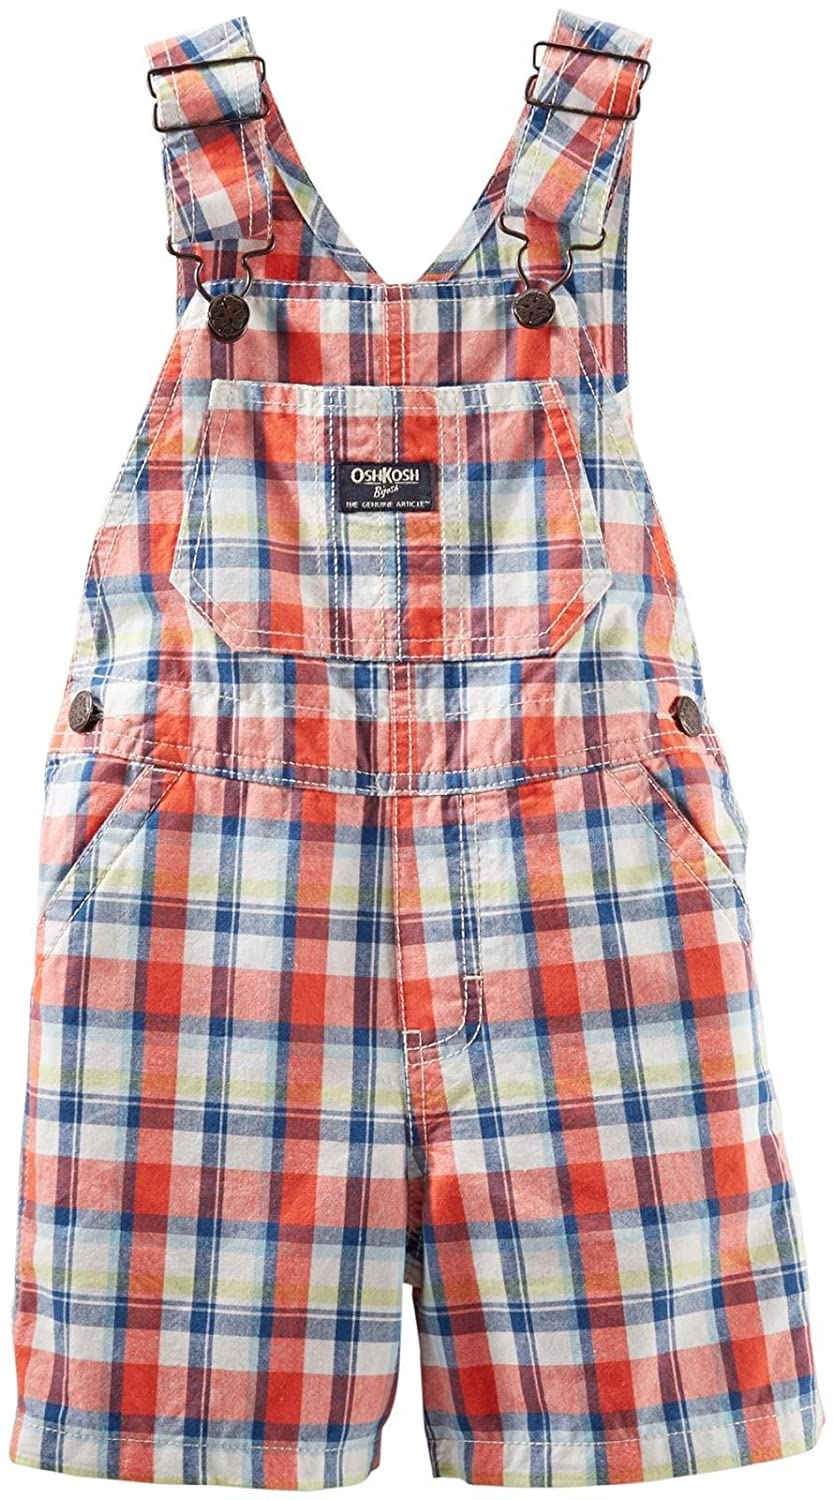 OshKosh Baby Boys'Nostalgic Plaid Shortalls